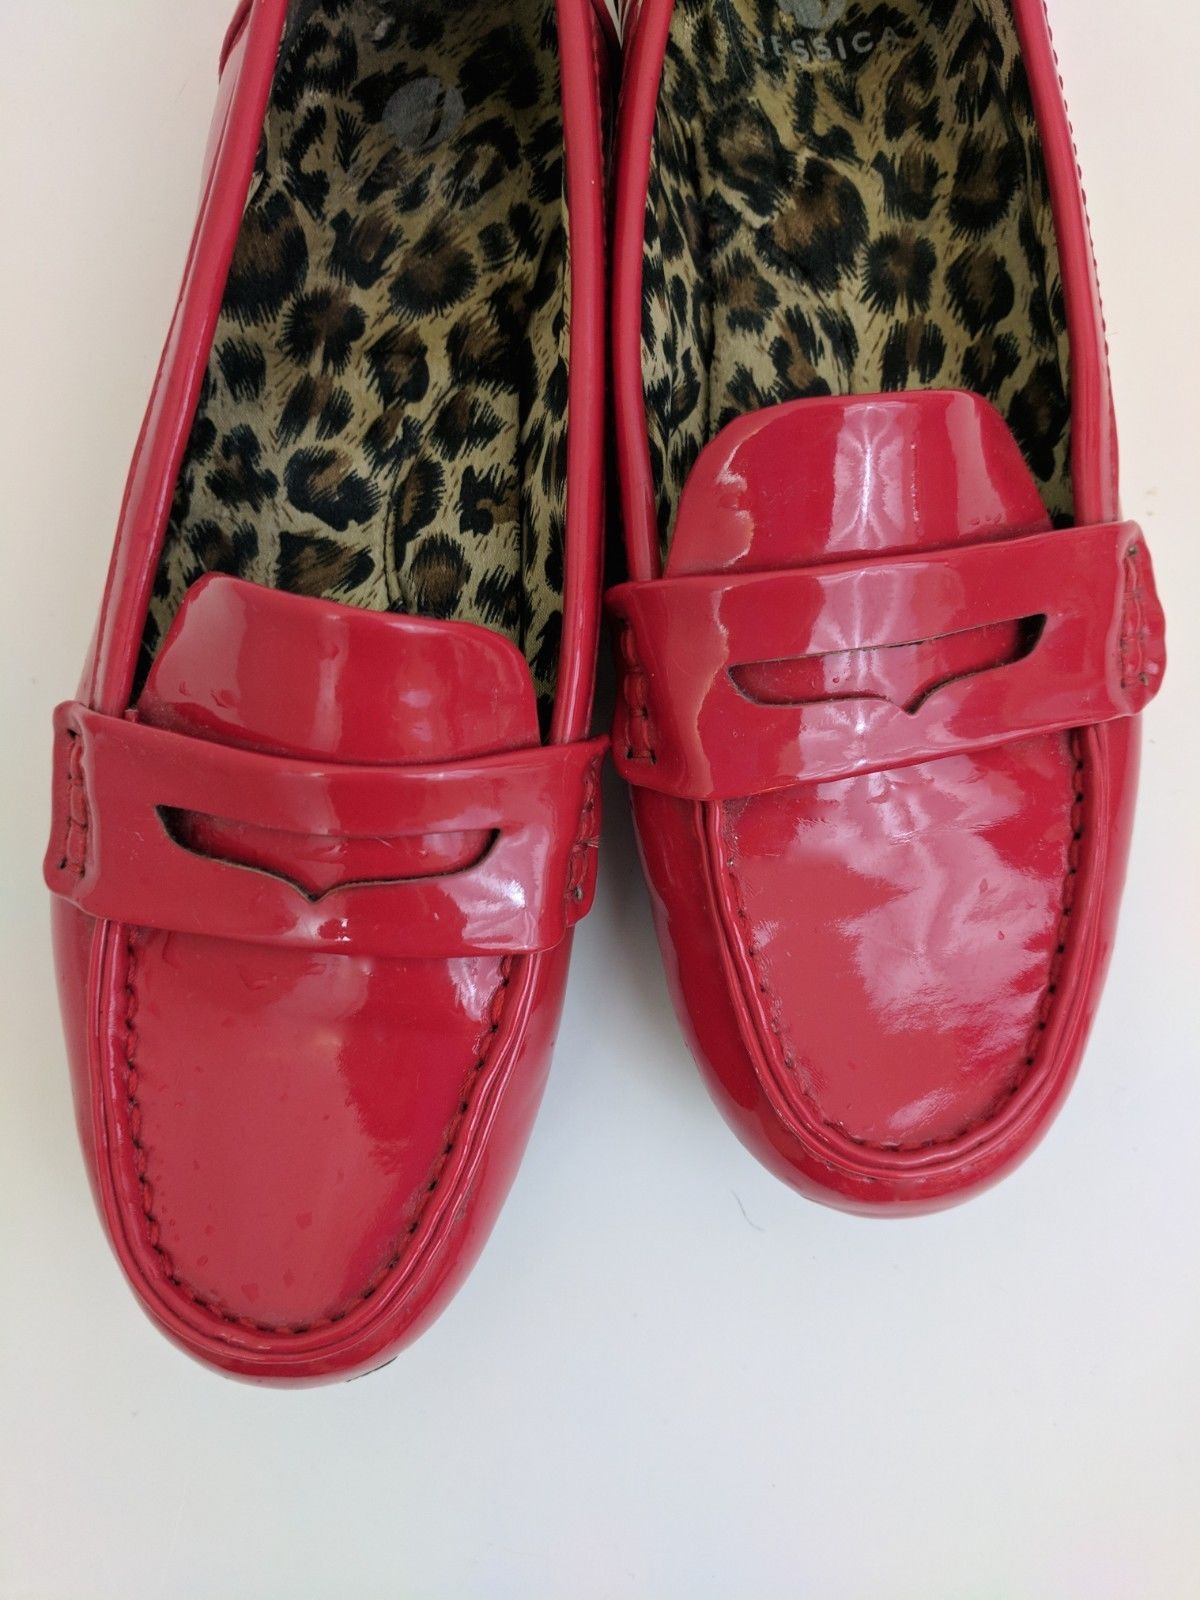 a76e15363b4 Jessica Red Patent Leather Penny Loafers Slip On Shoes Women s Size 38 US  Size 7